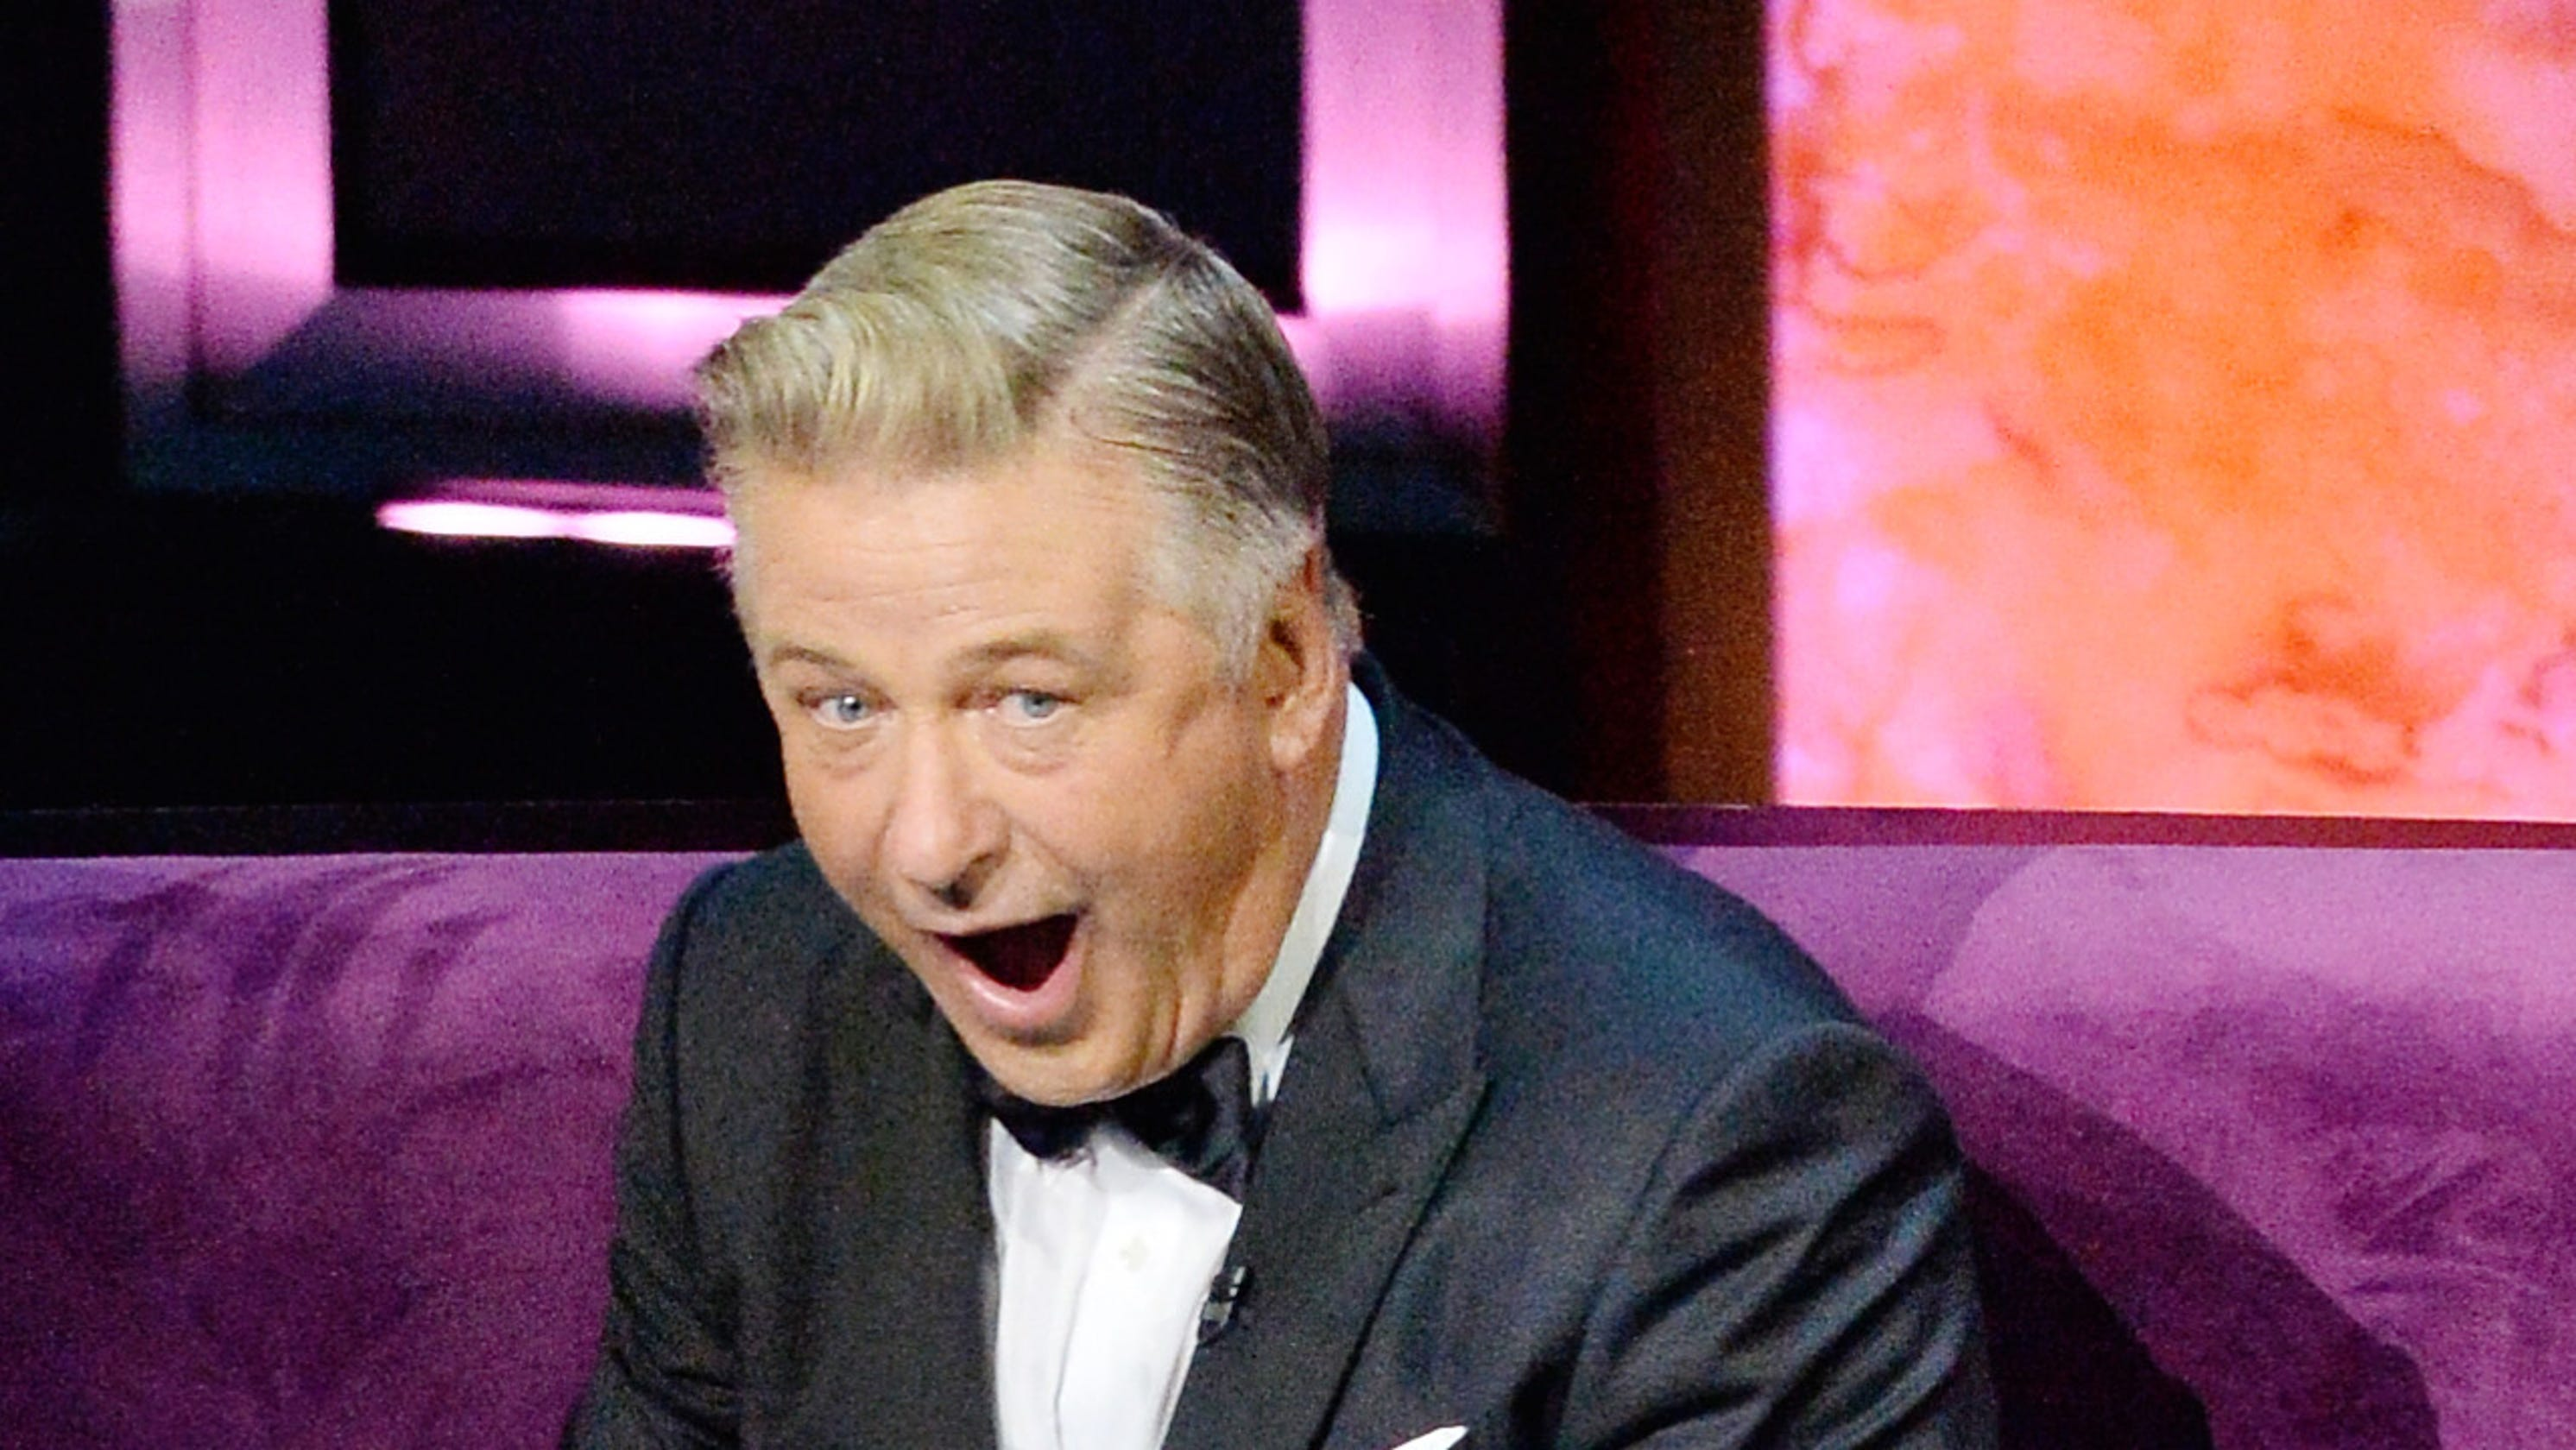 ALEC BALDWIN DIES IN FLAMES WHEN CELEBRITY ROAST MALFUNCTIONS